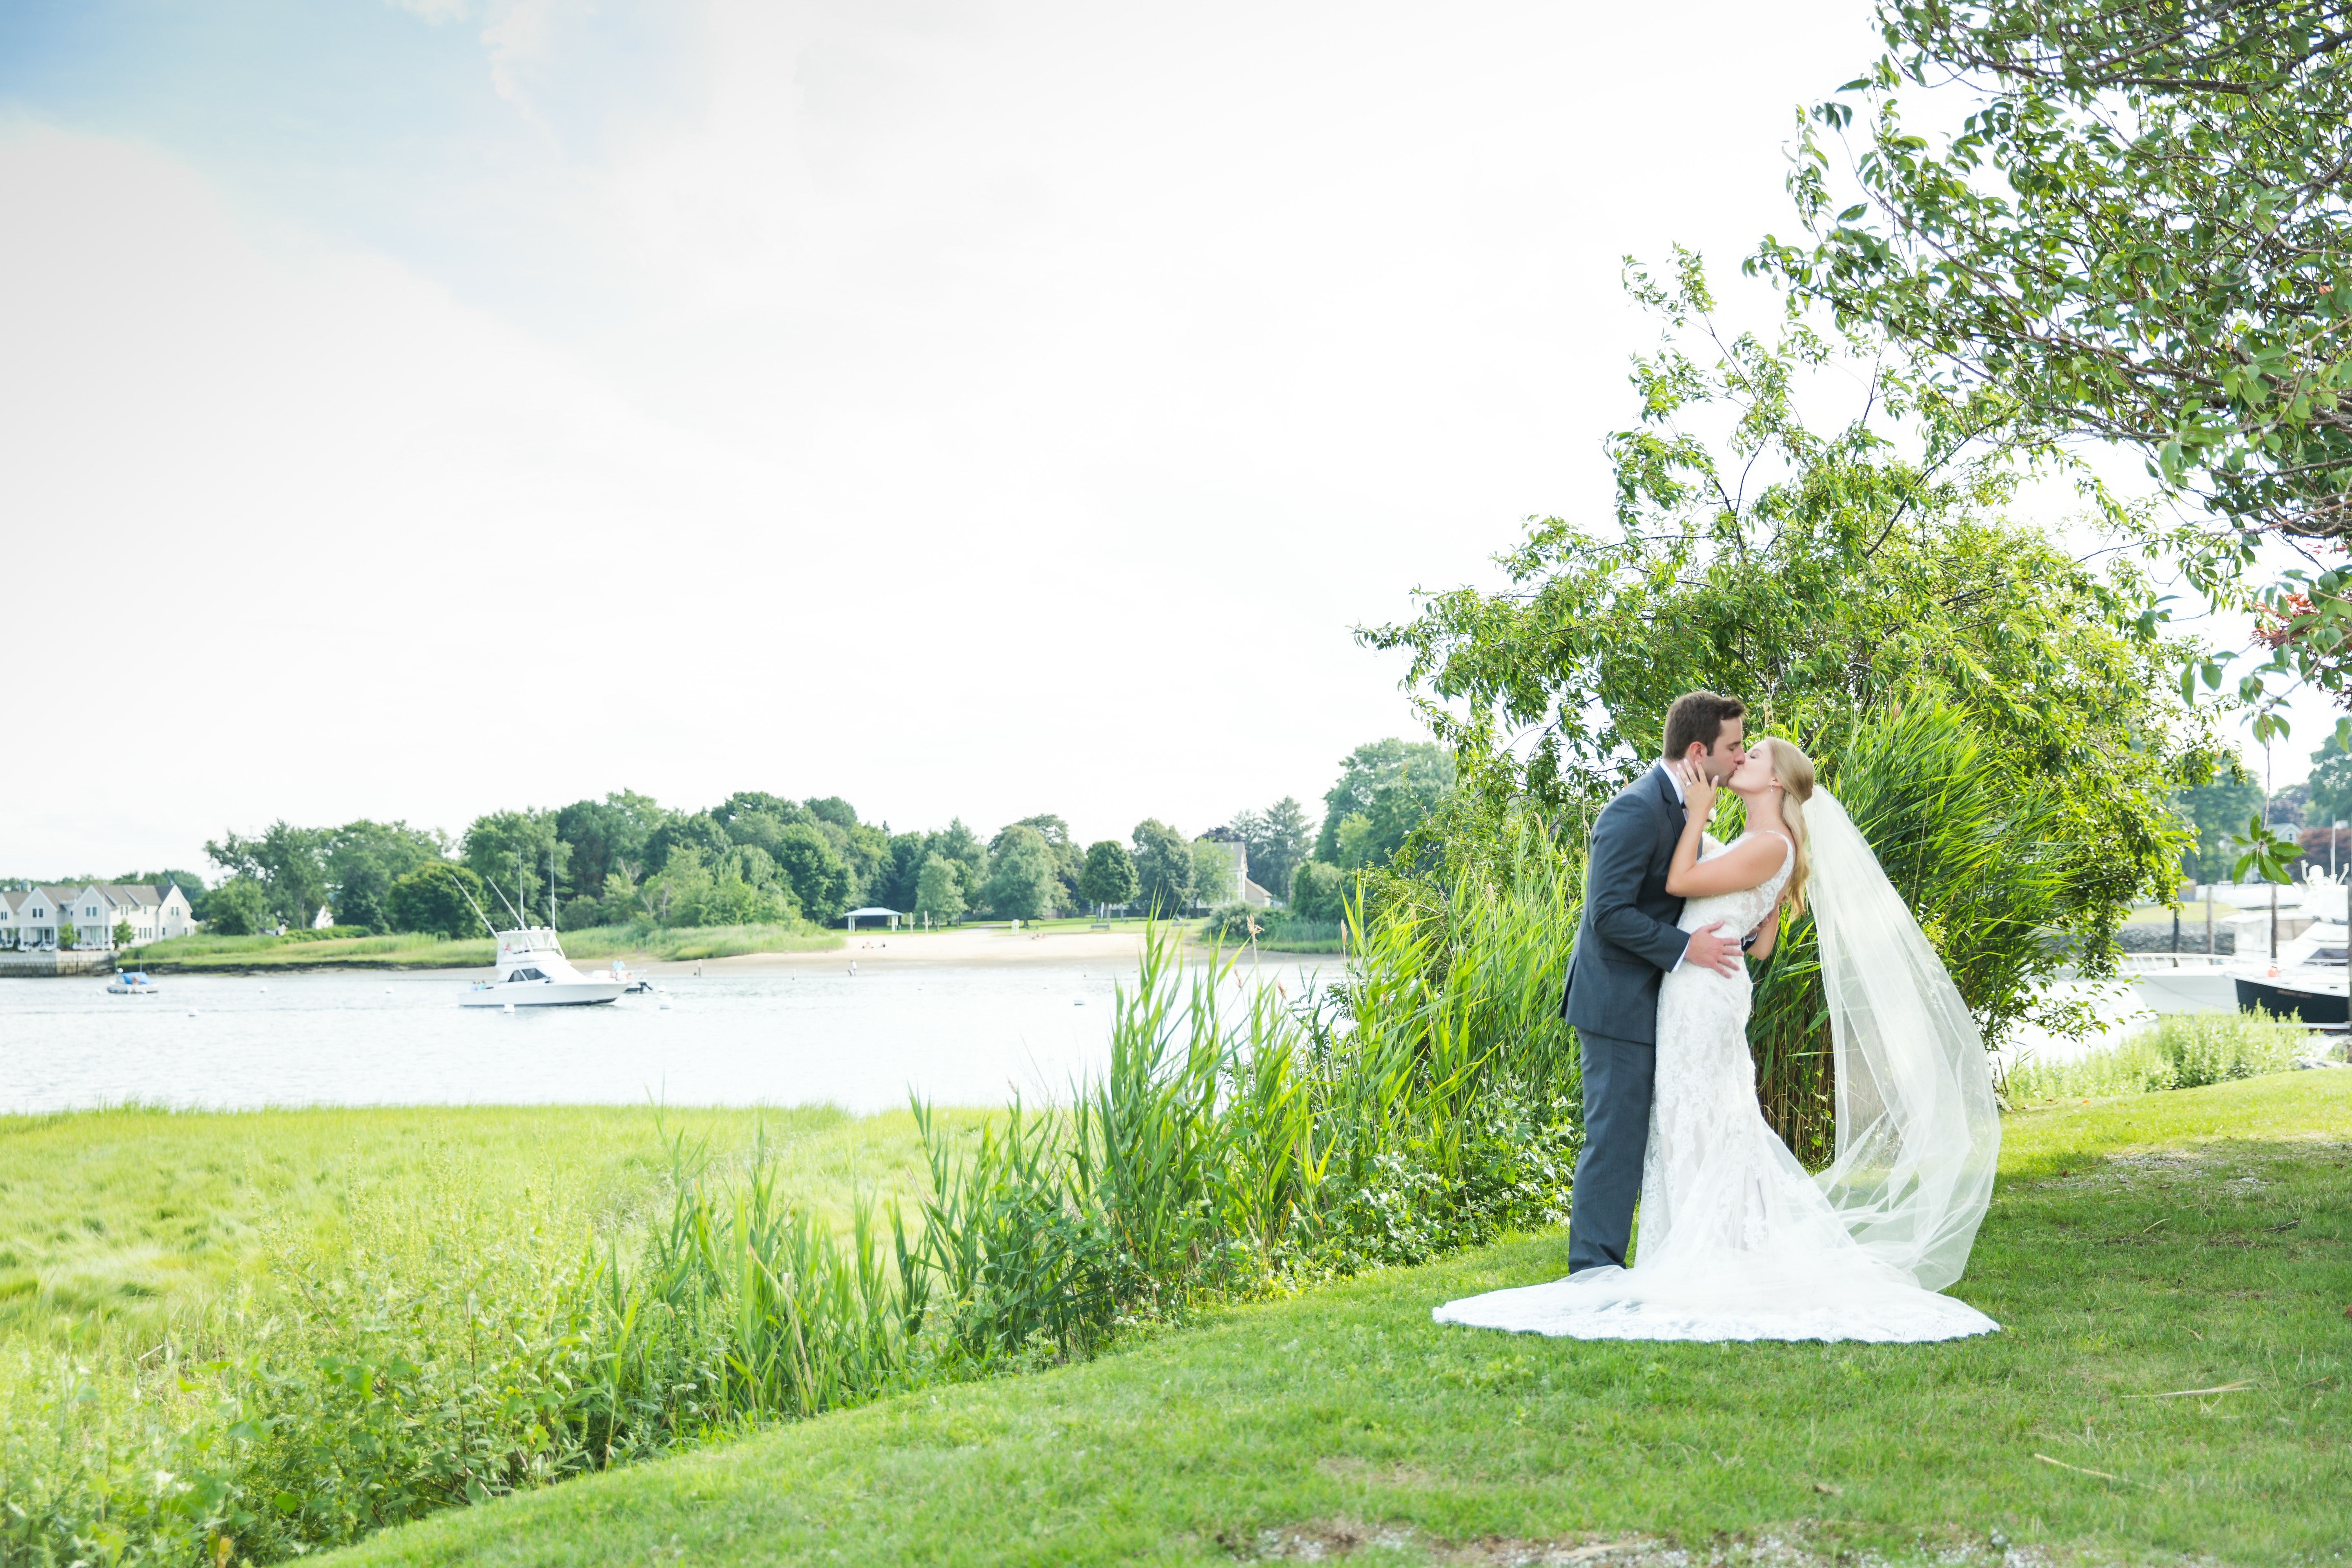 Ashley- Bridal Series Interview- Bride & Groom Kissing By Water